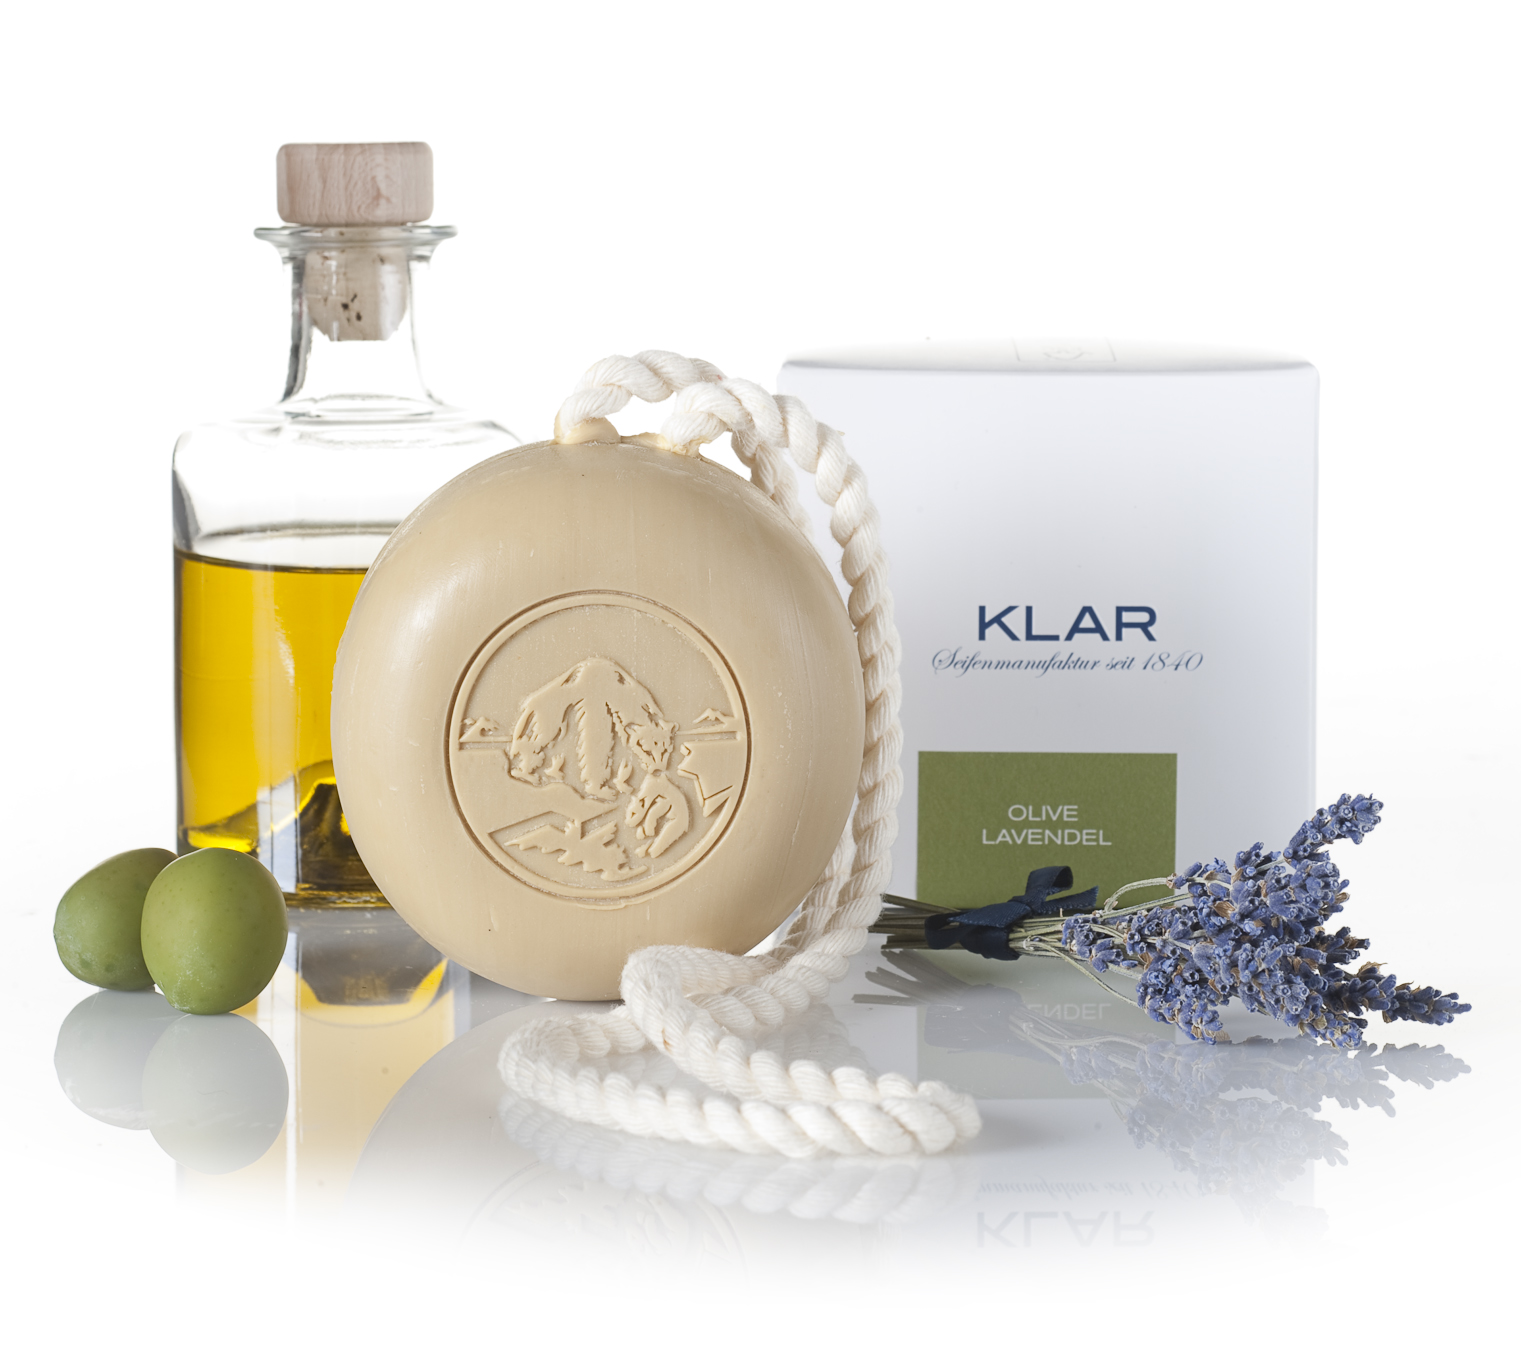 Klar Olive & Lavender Hair and Body Soap on a Rope 250g